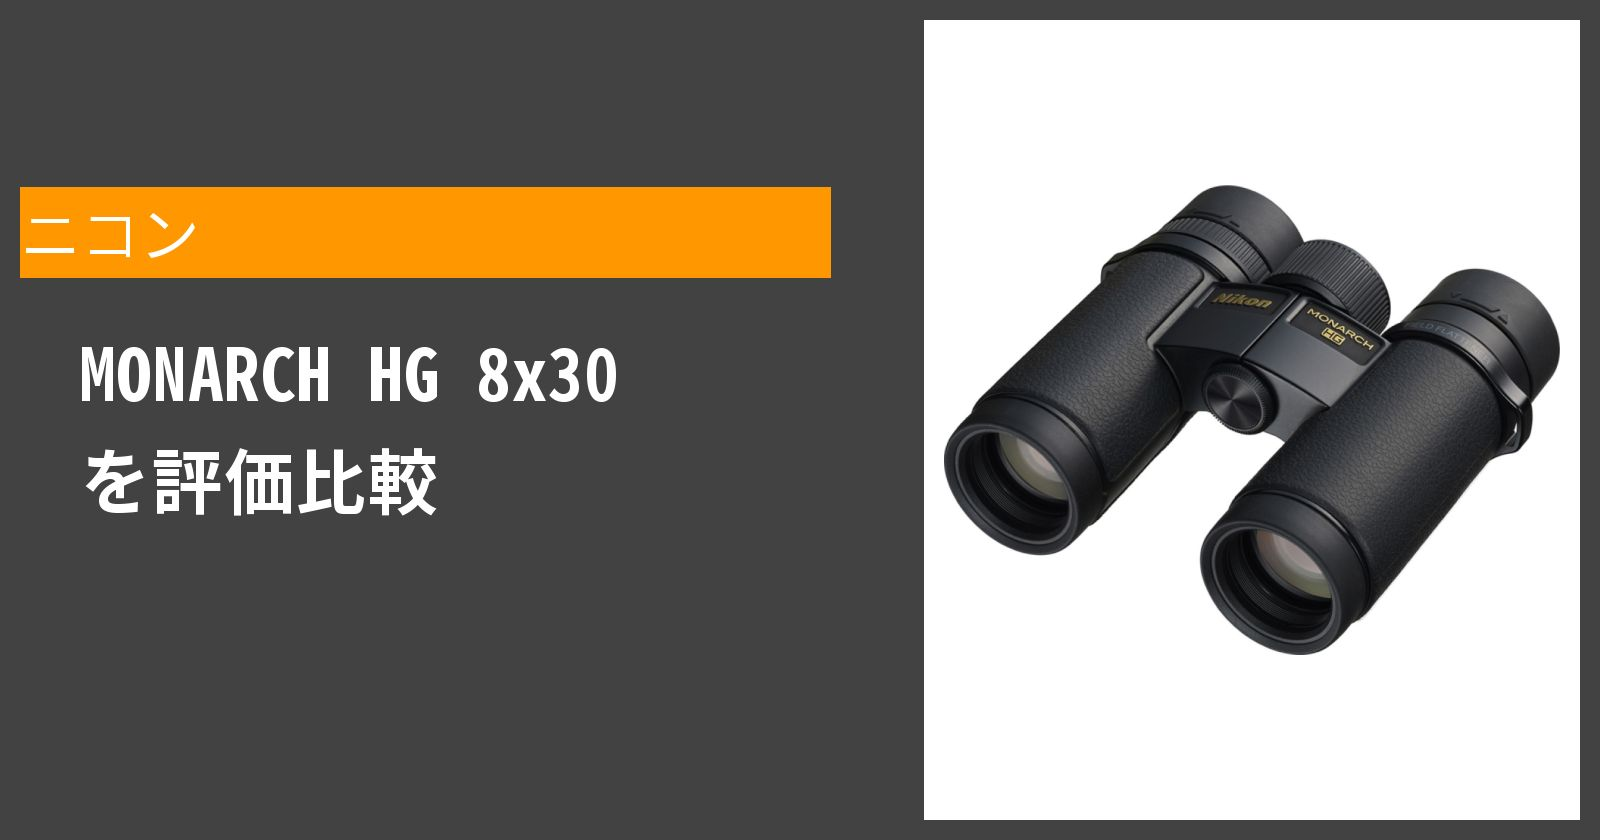 MONARCH HG 8x30を徹底評価